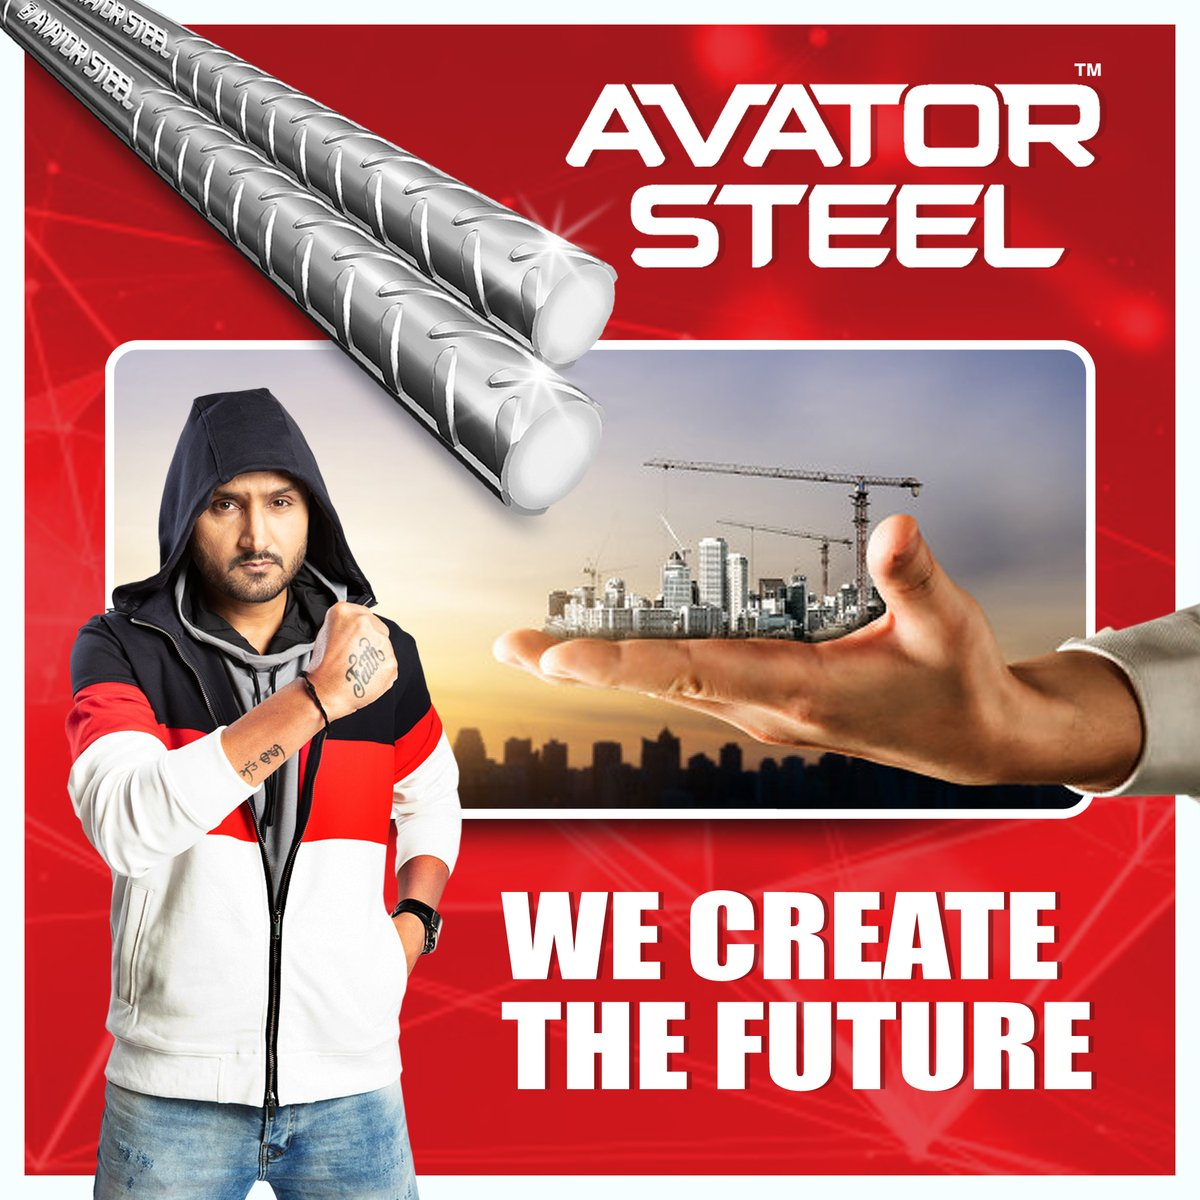 Made with the latest technology, #AvatorSteel's strength is unmatched.   #HarbhajanSingh  @harbhajan_singh